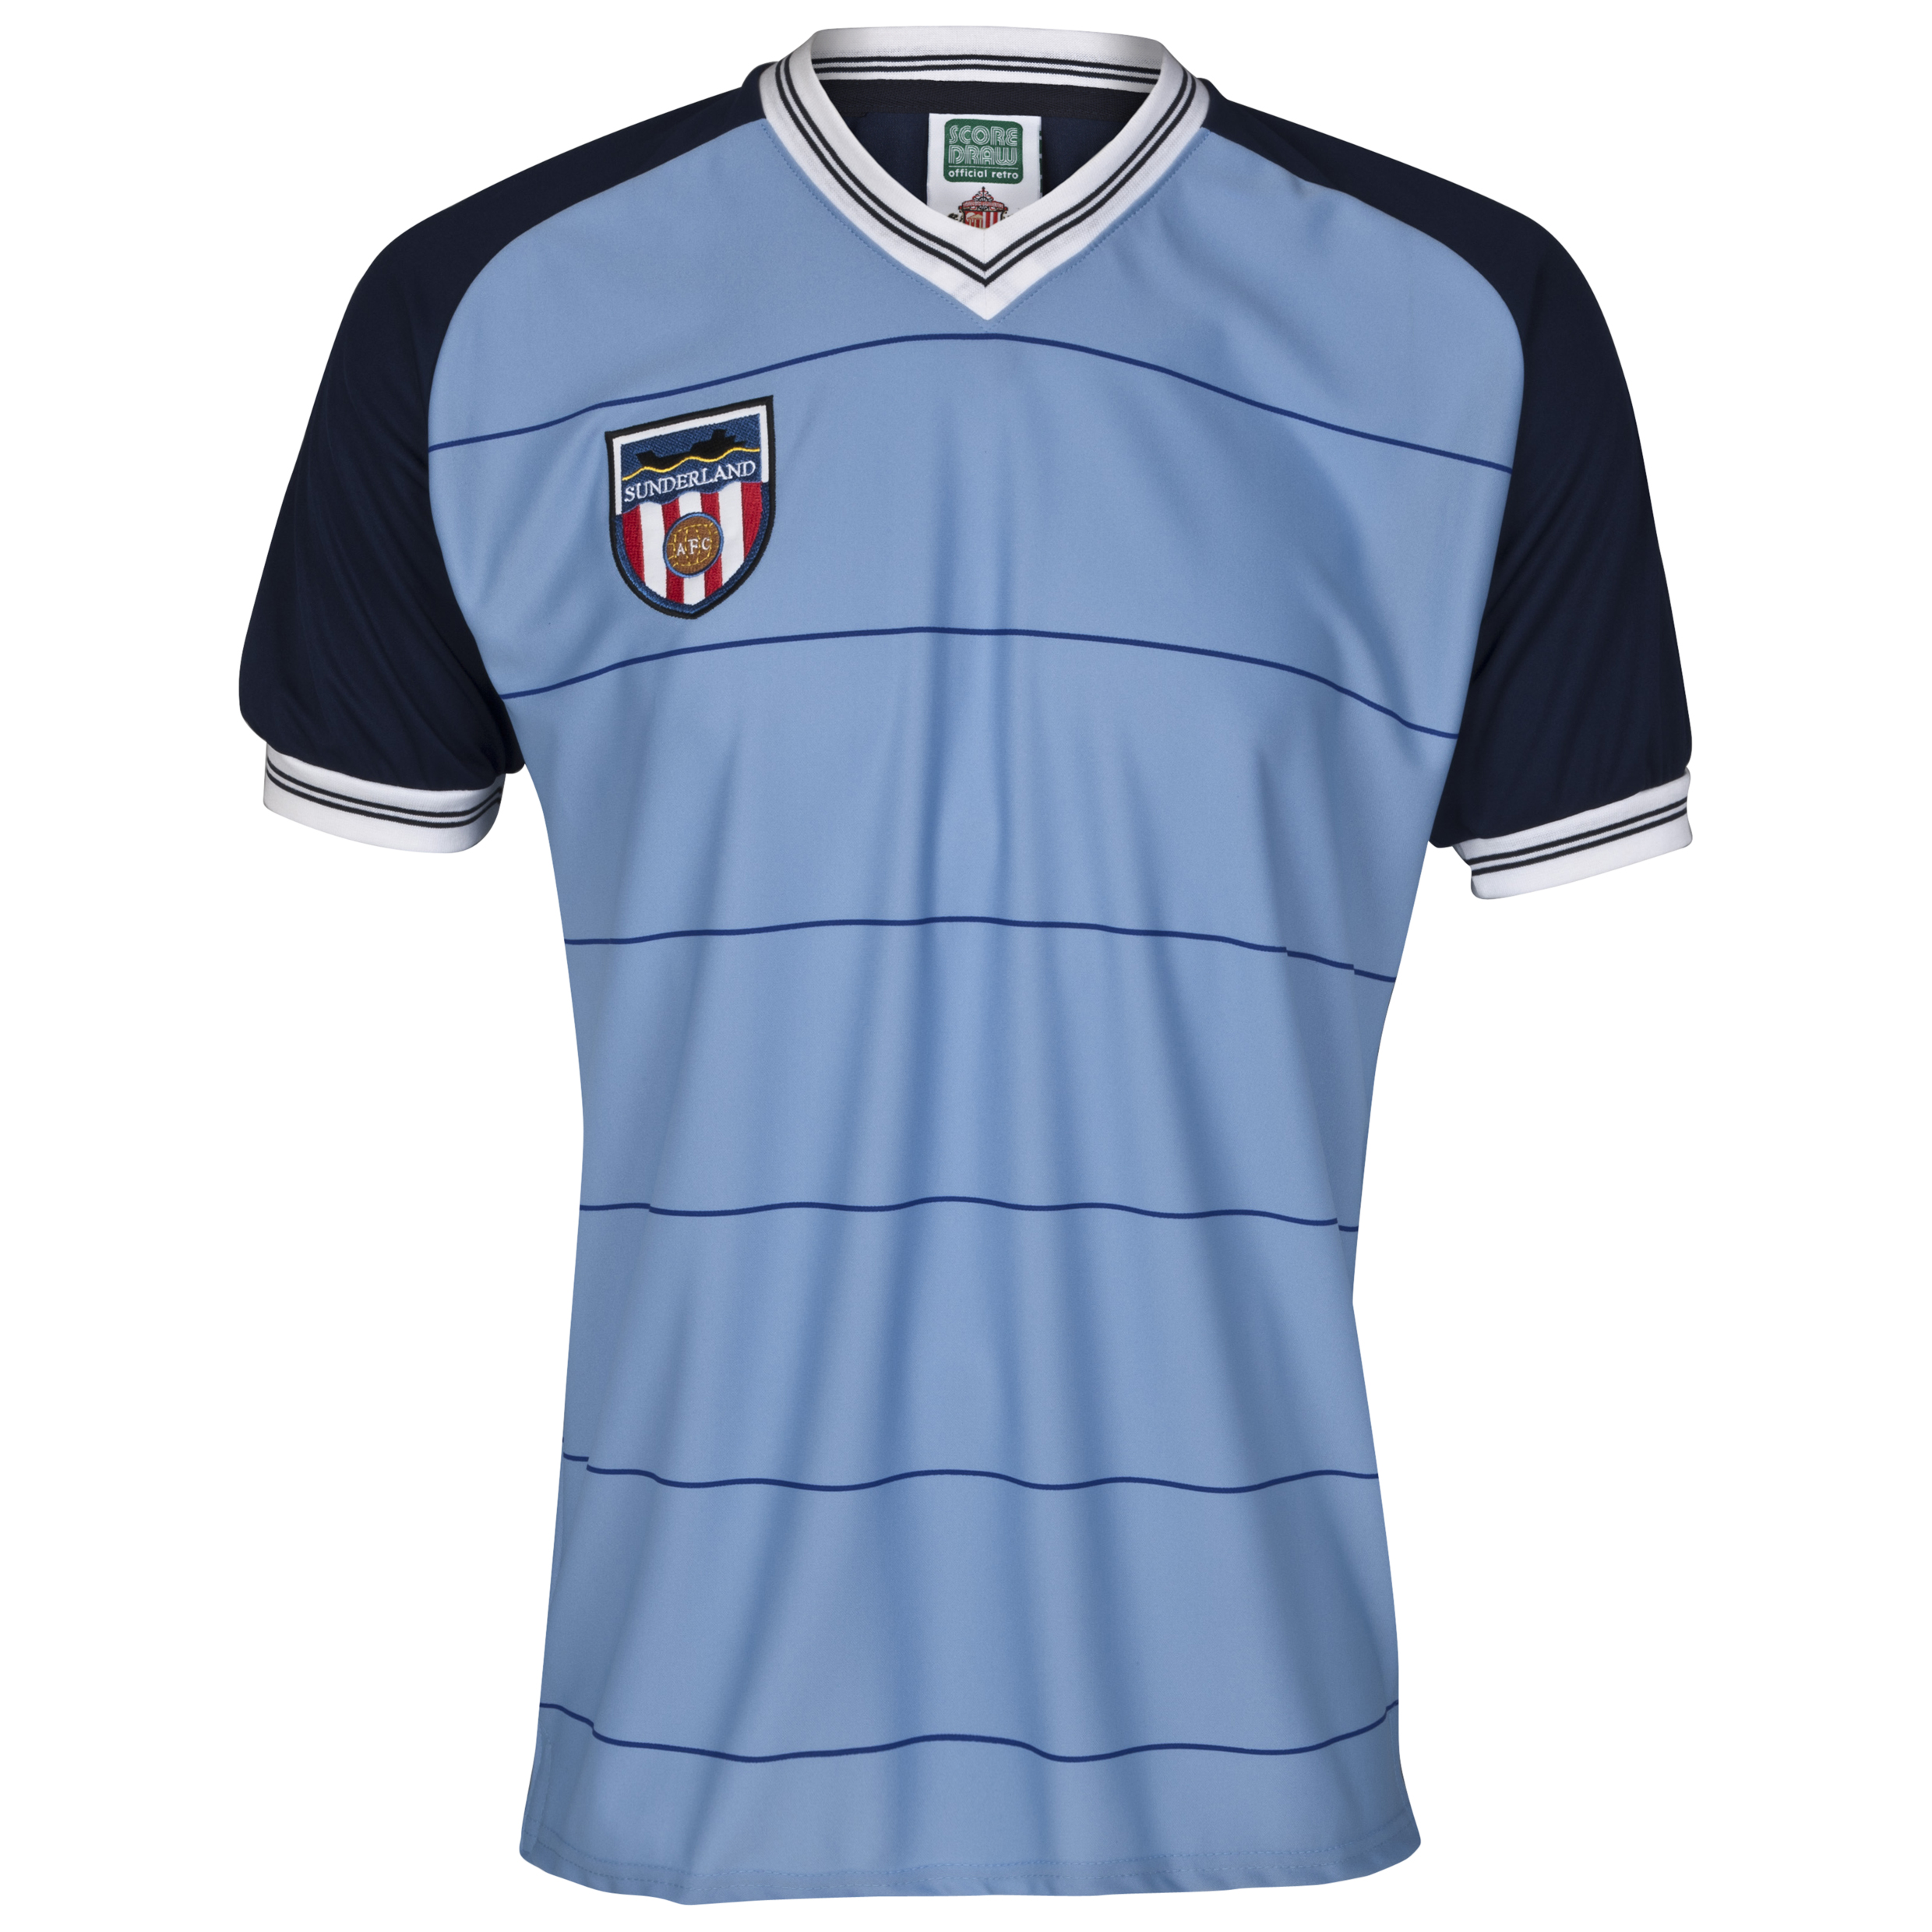 Sunderland 1984 Away Shirt